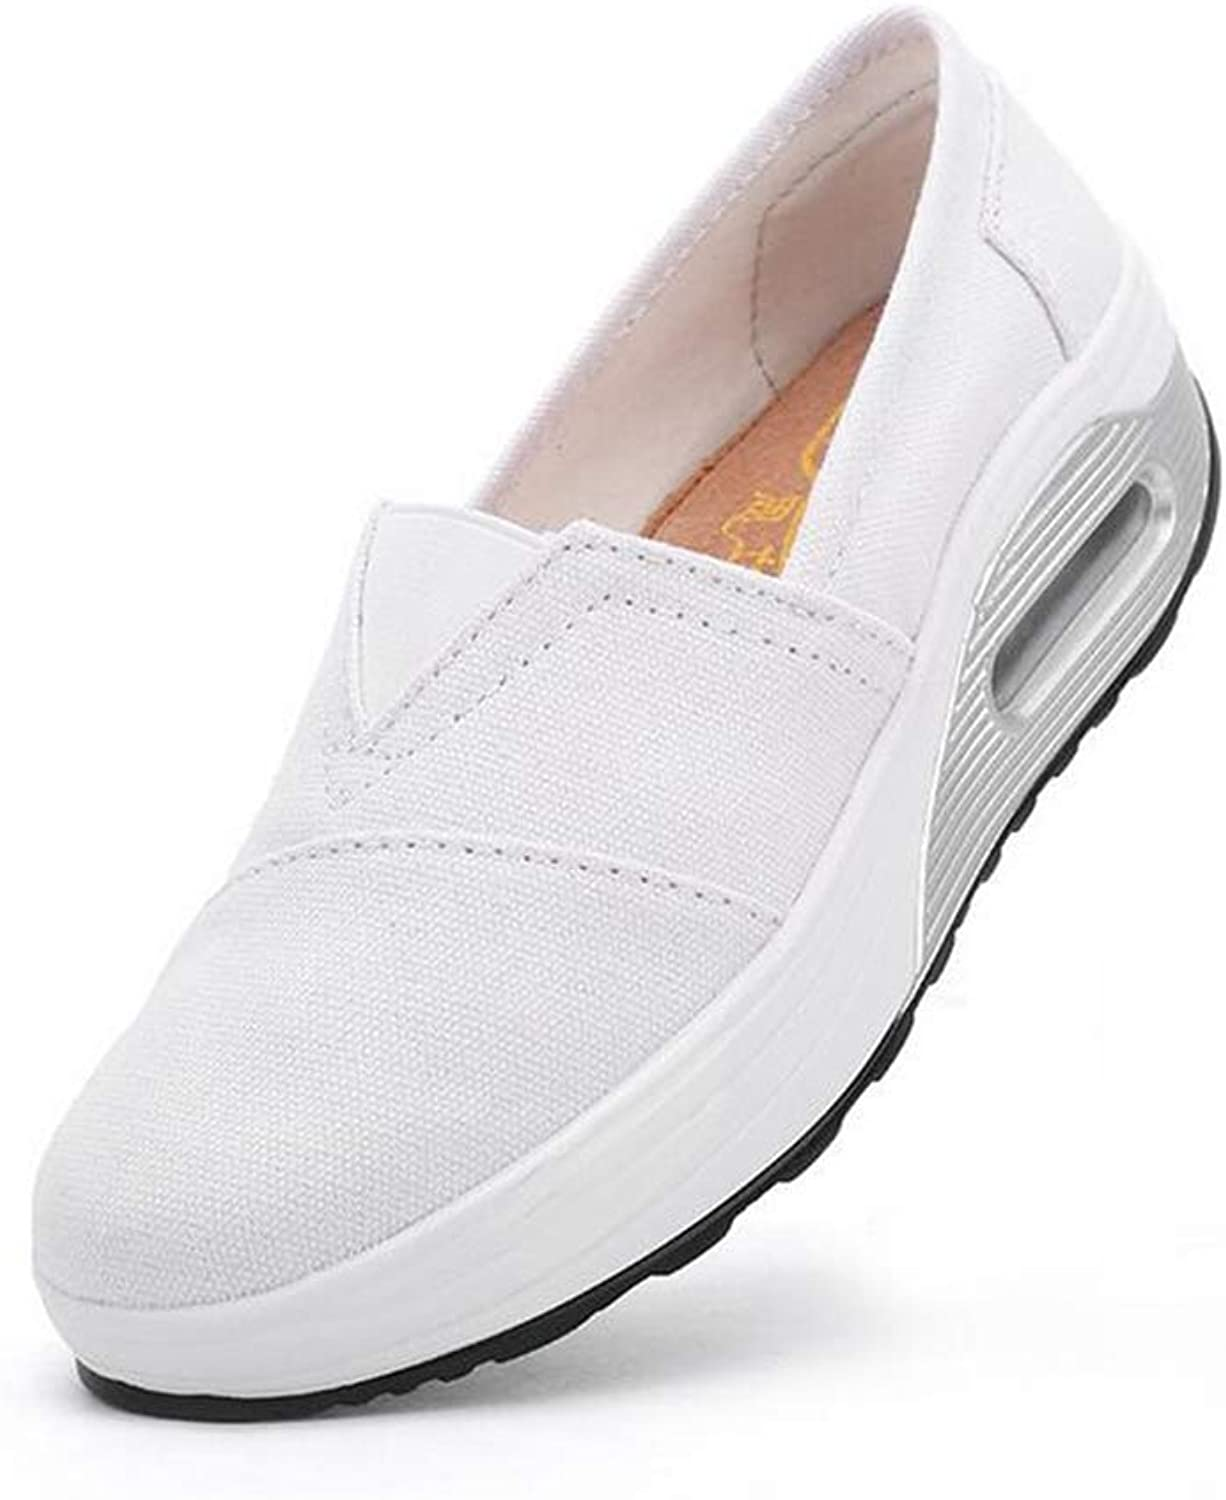 76f3ef391c51f Exing Exing Exing Womens's shoes Fall New Canvas shoes Casual Air ...